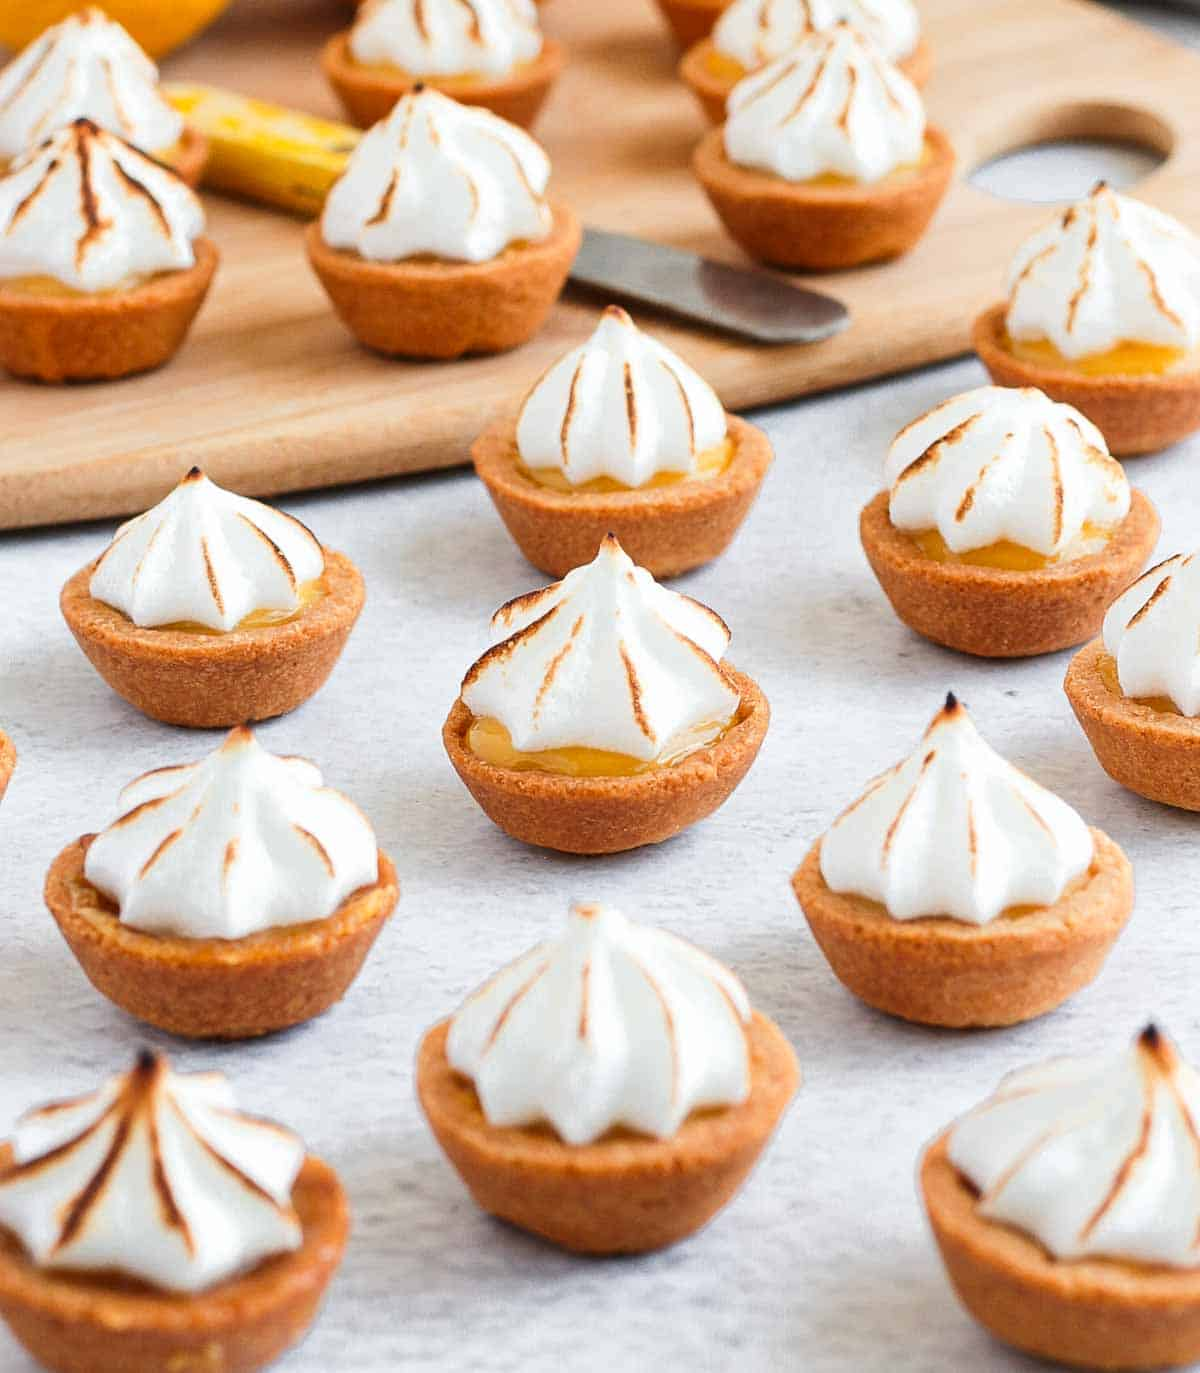 Tartlet on a grey surface with toasted meringue.